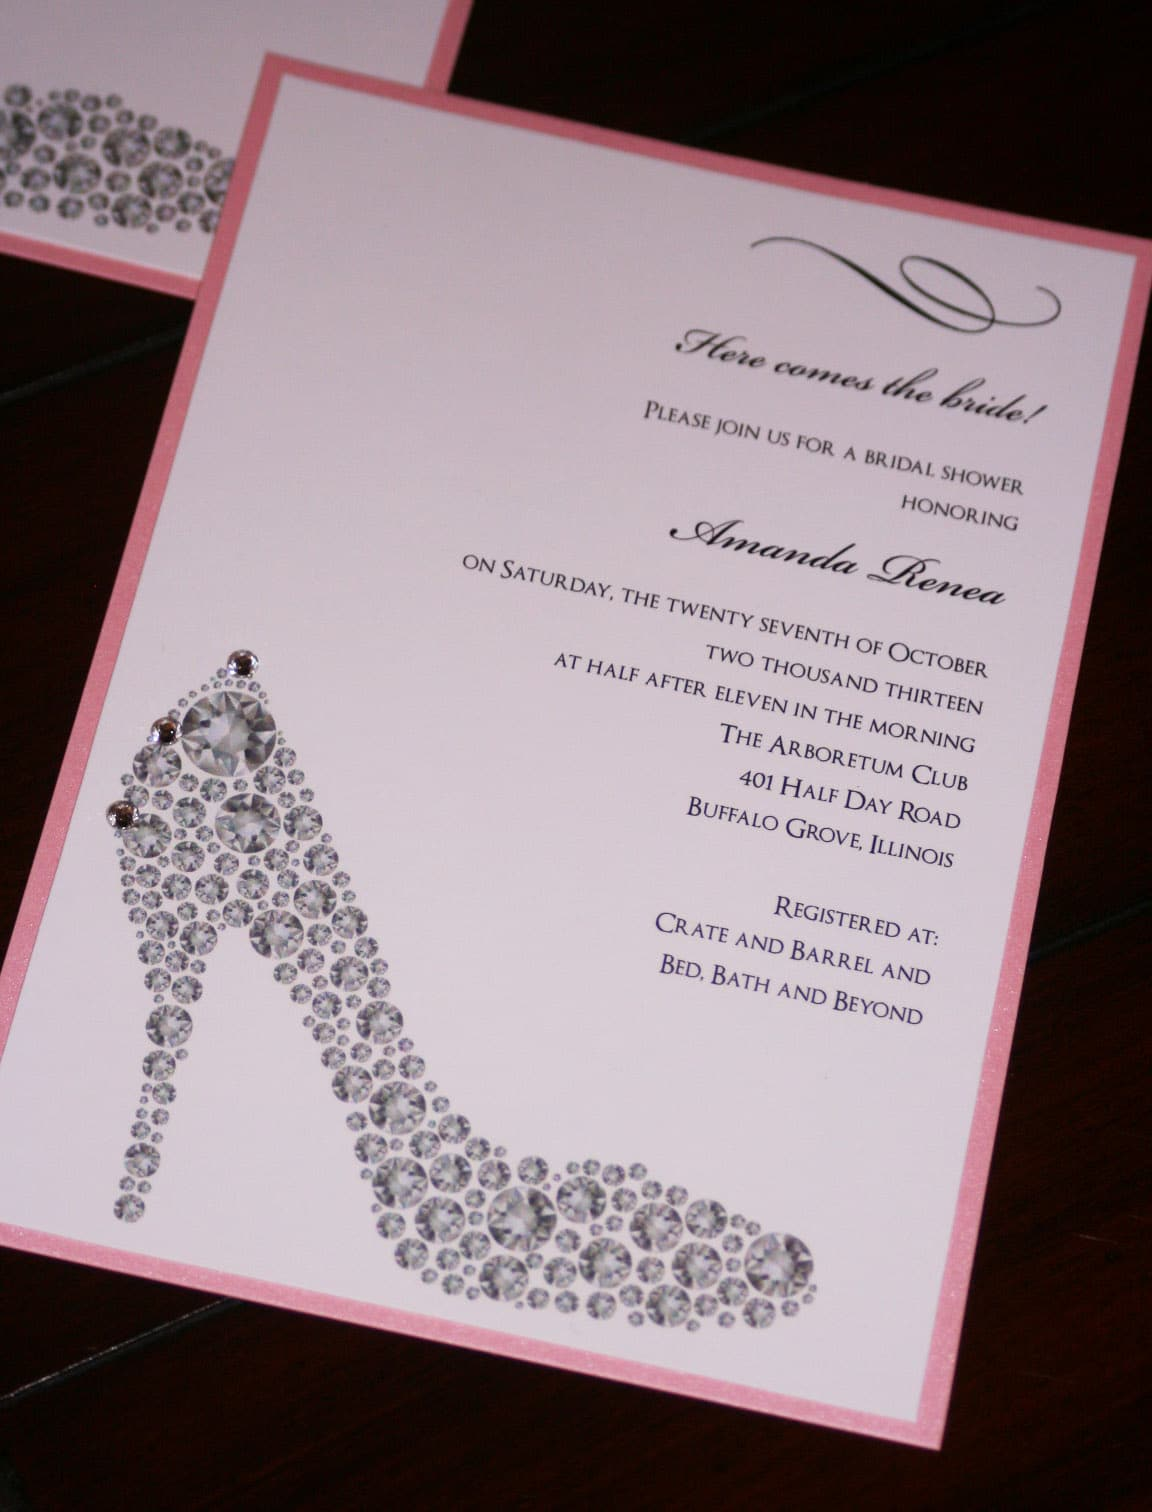 Bridal Shower Invitations: Bridal Shower Invitations Text